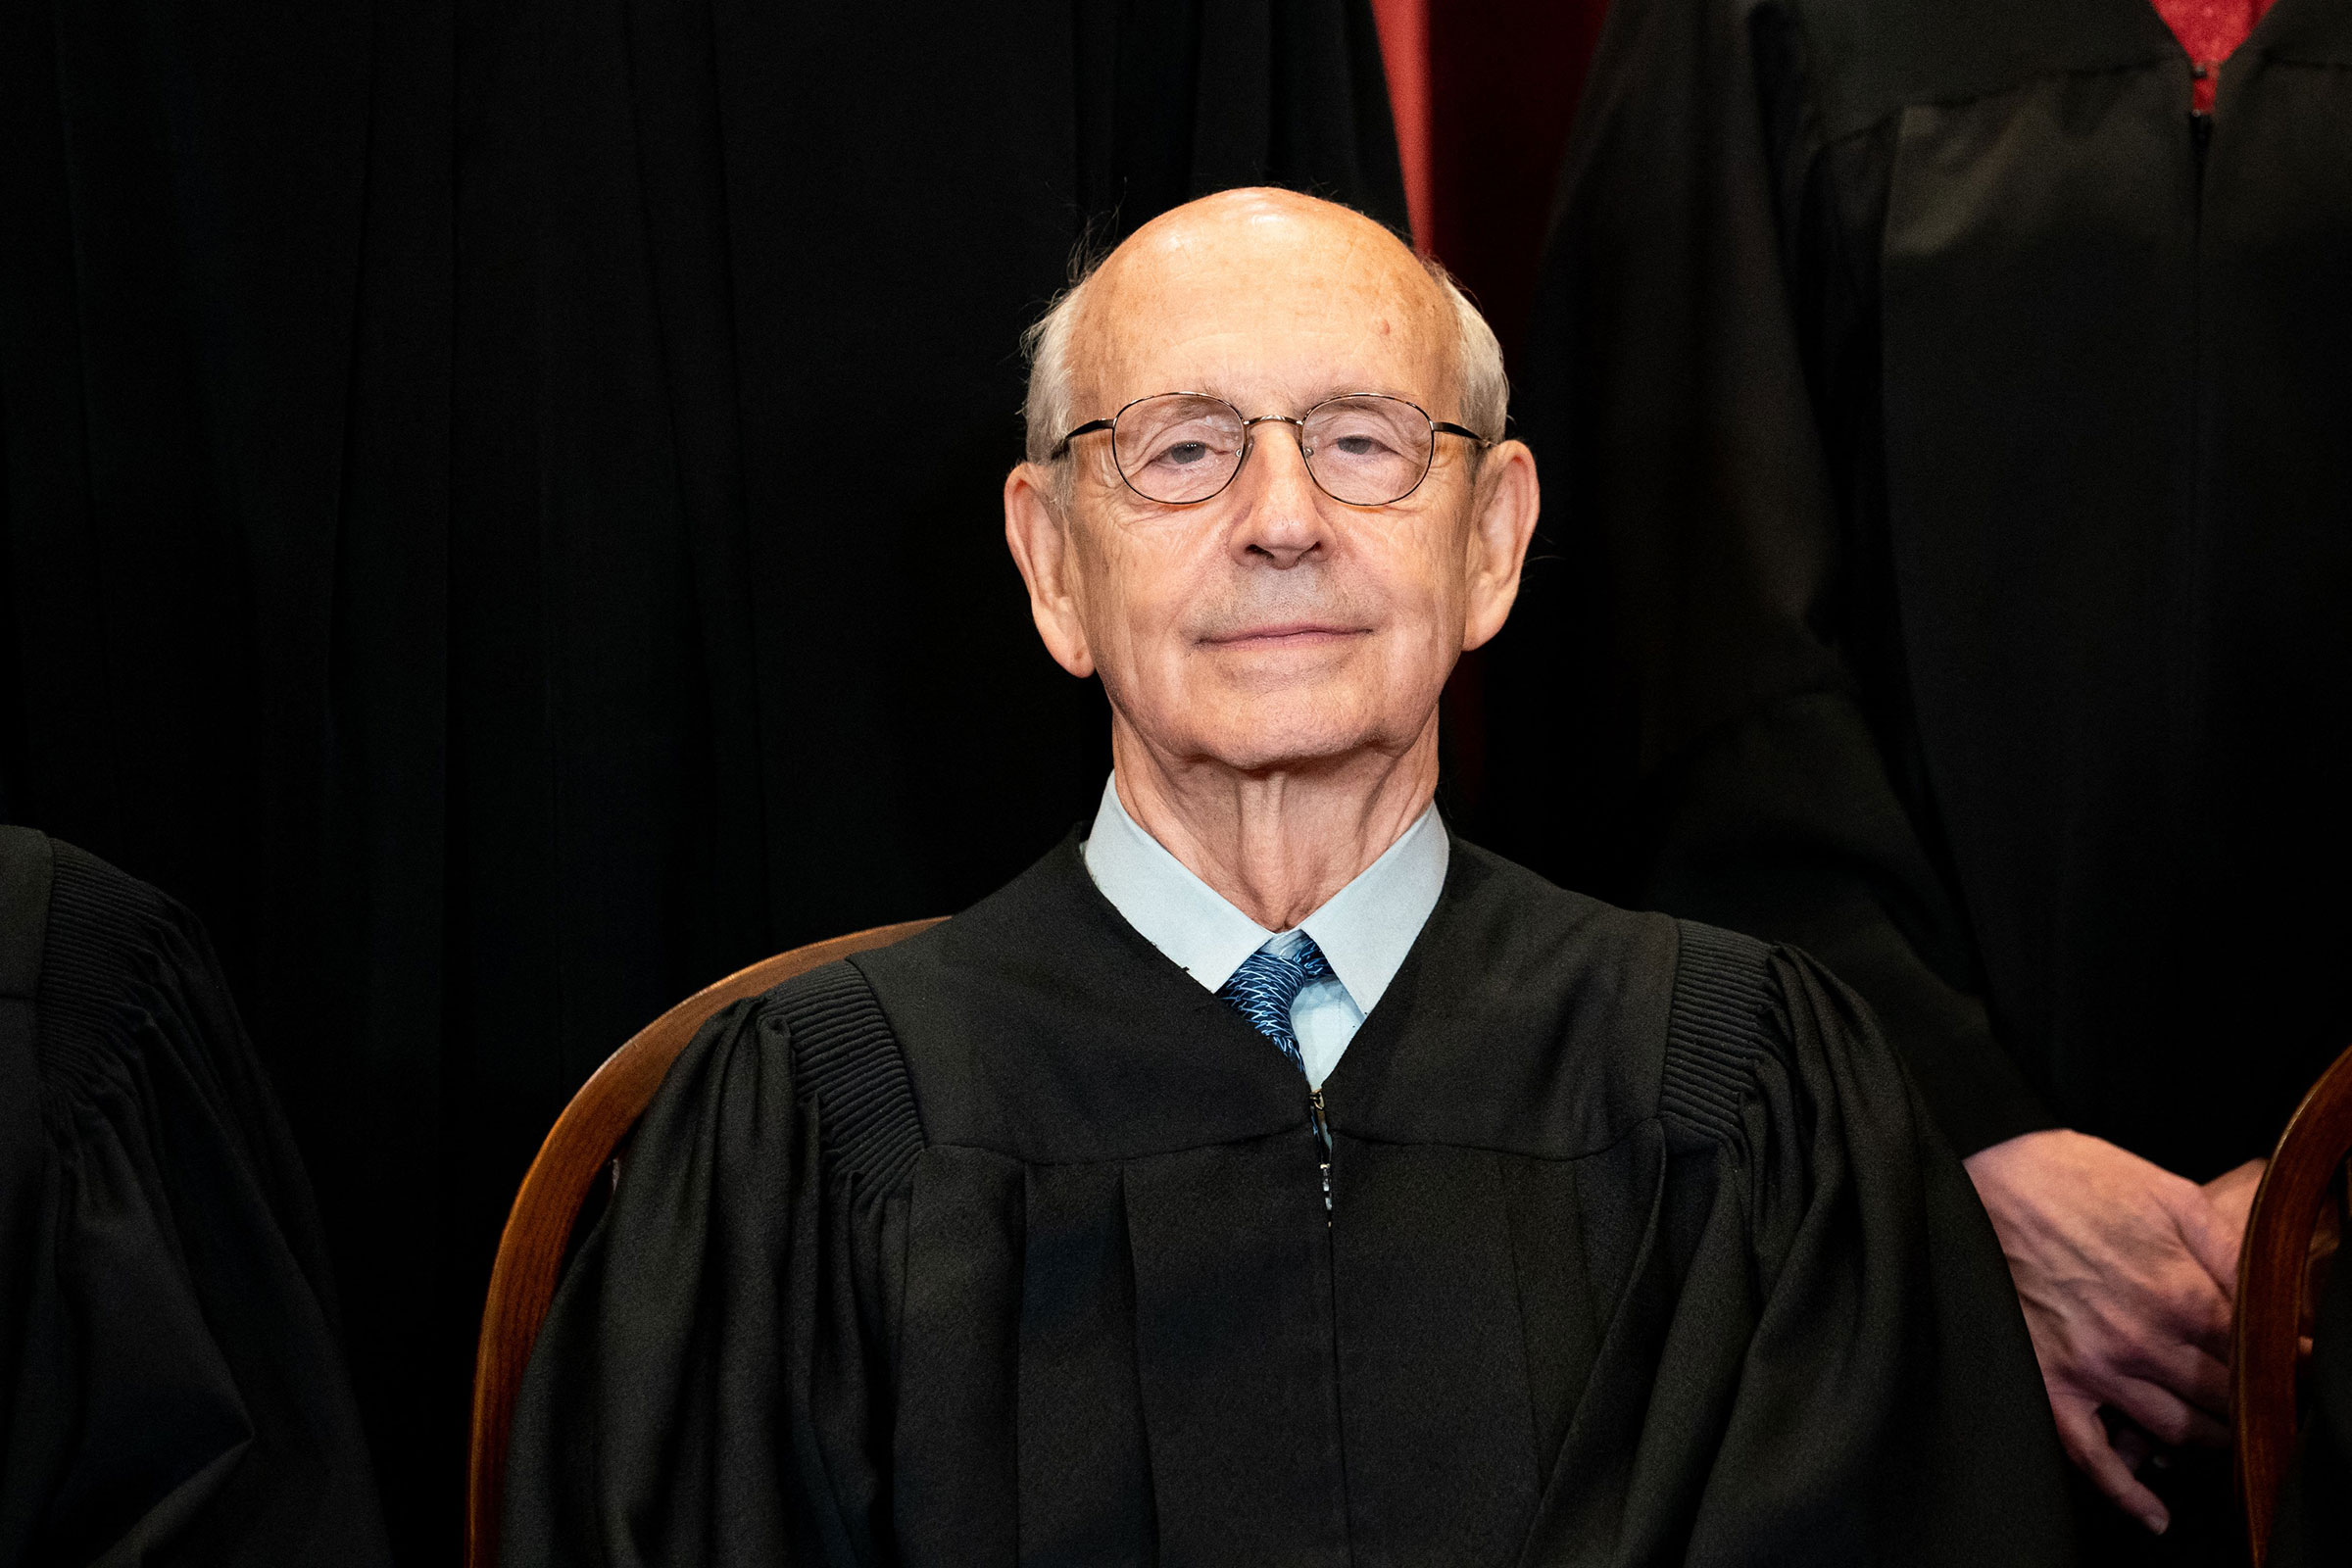 Associate Justice Stephen Breyer sits during a group photo of the Justices at the Supreme Court in Washington on April 23, 2021.